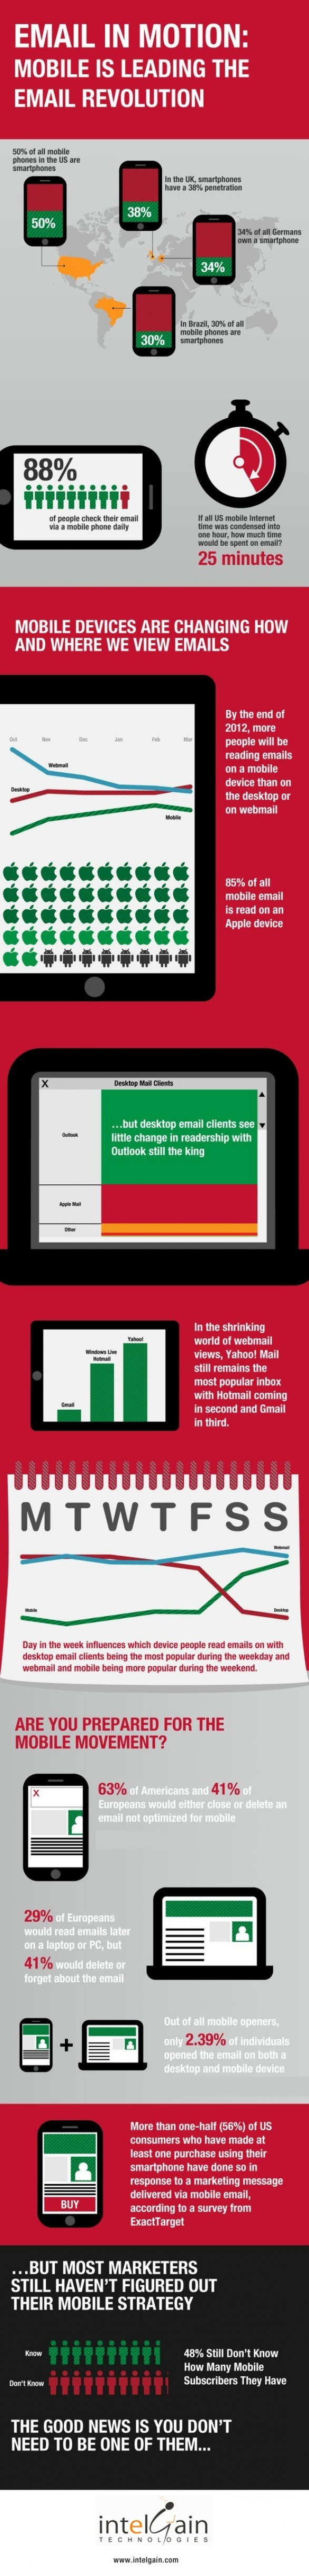 MobileMarketing.nl: Mobile Infographics (15 januari 2013)